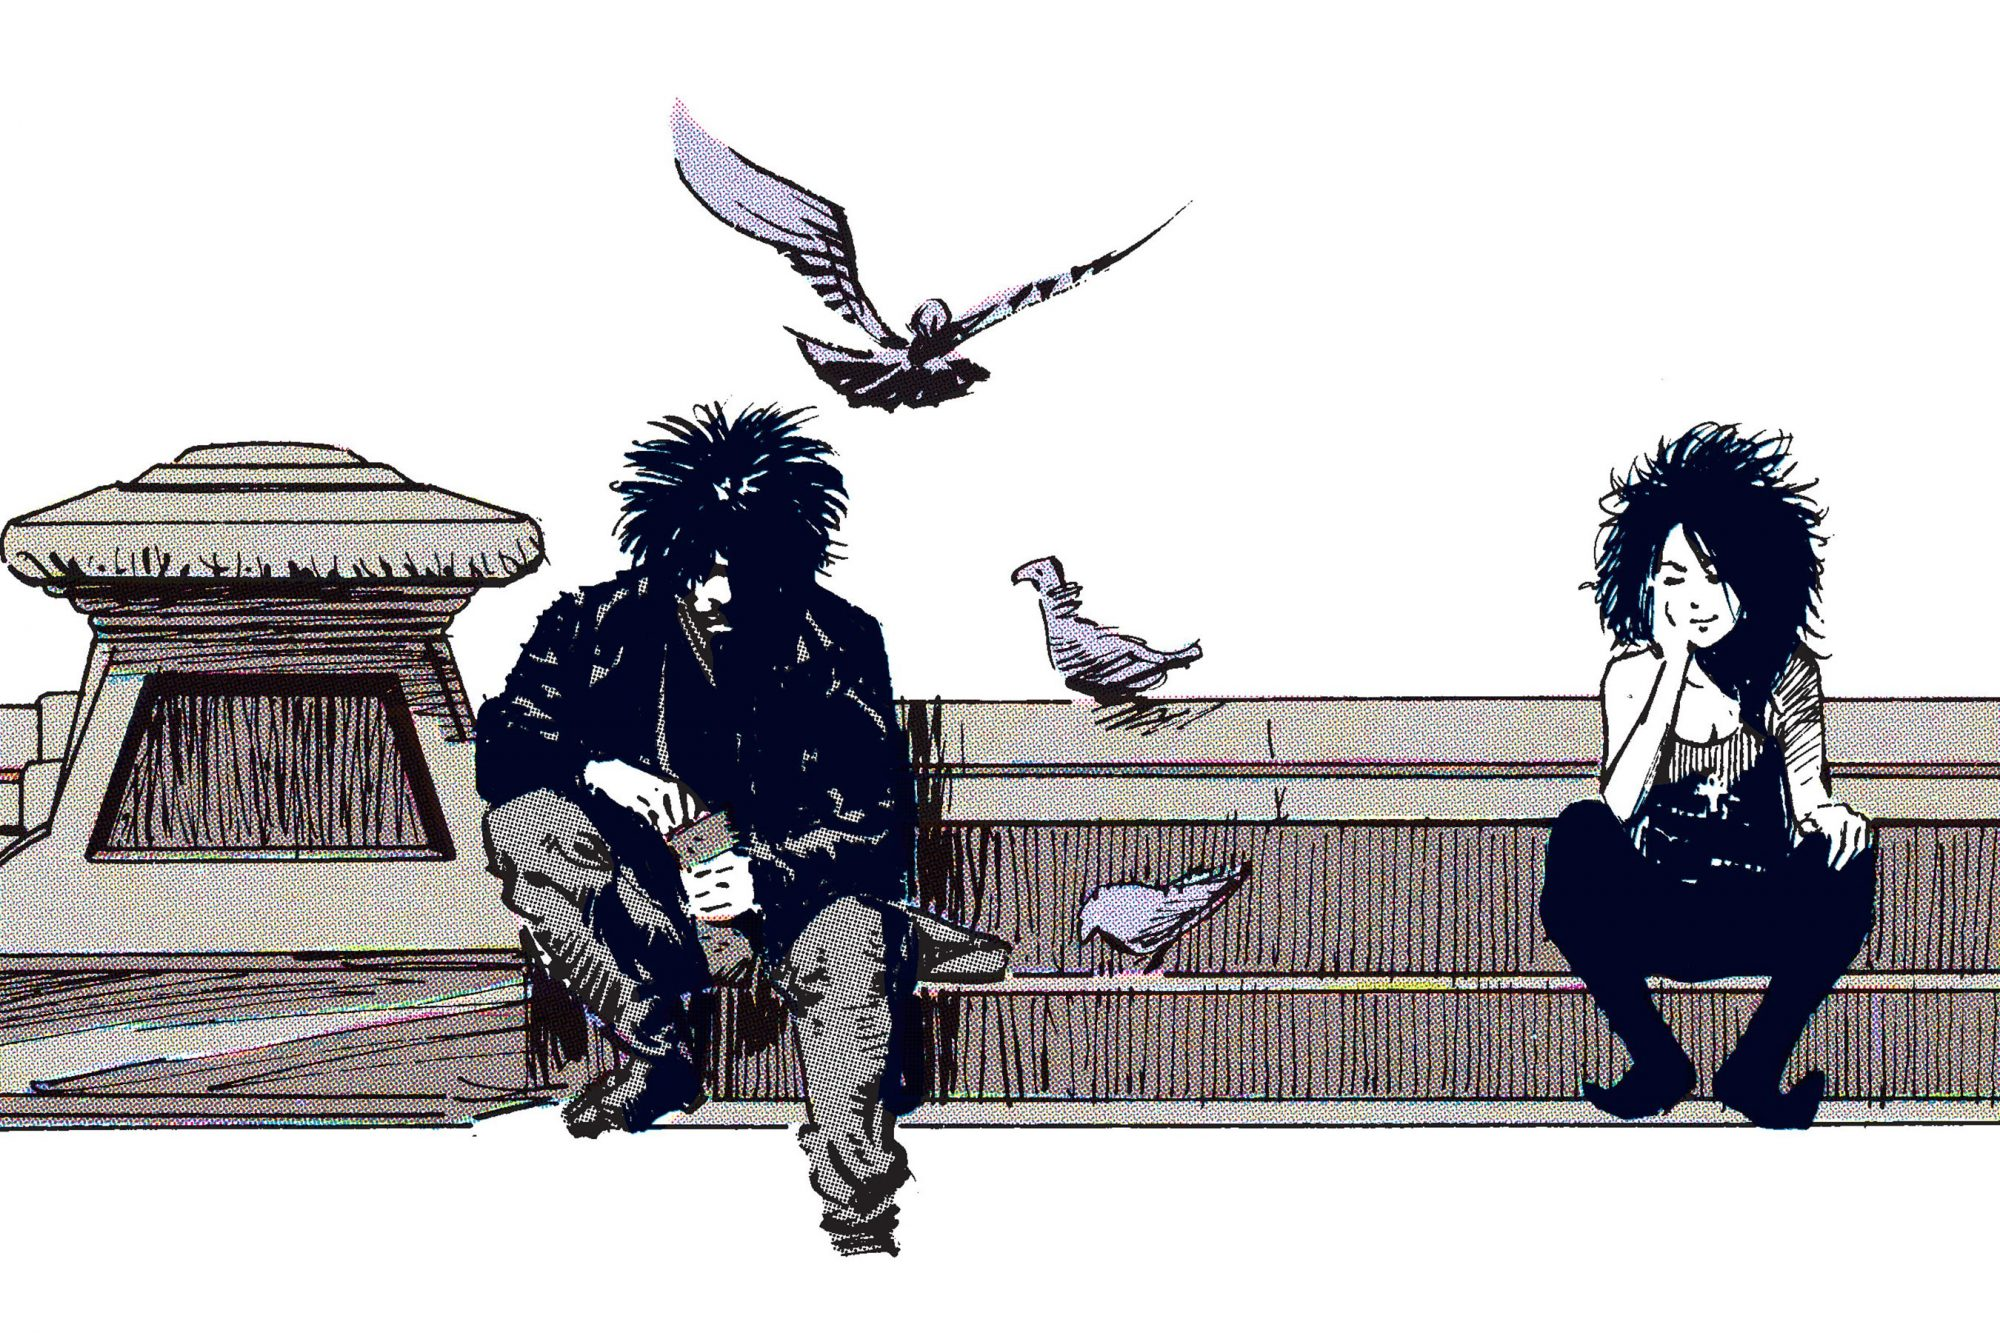 Morpheus a.k.a. Dream is a fictional character who first appeared in the first issue of The Sandman